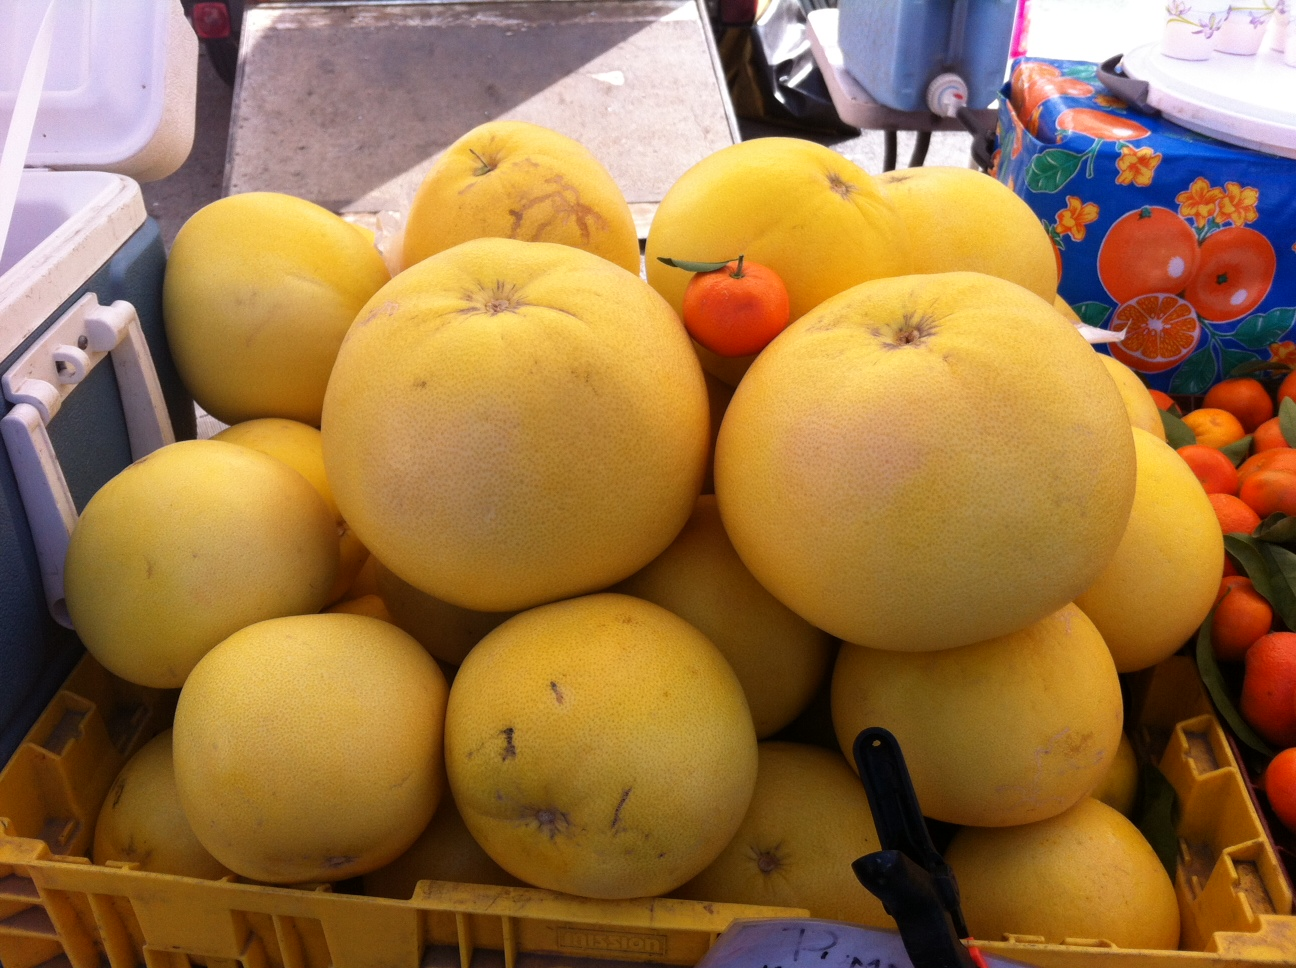 Big Pumelos Small Tangerine - A Savings Guide Based On The Taxes You Pay